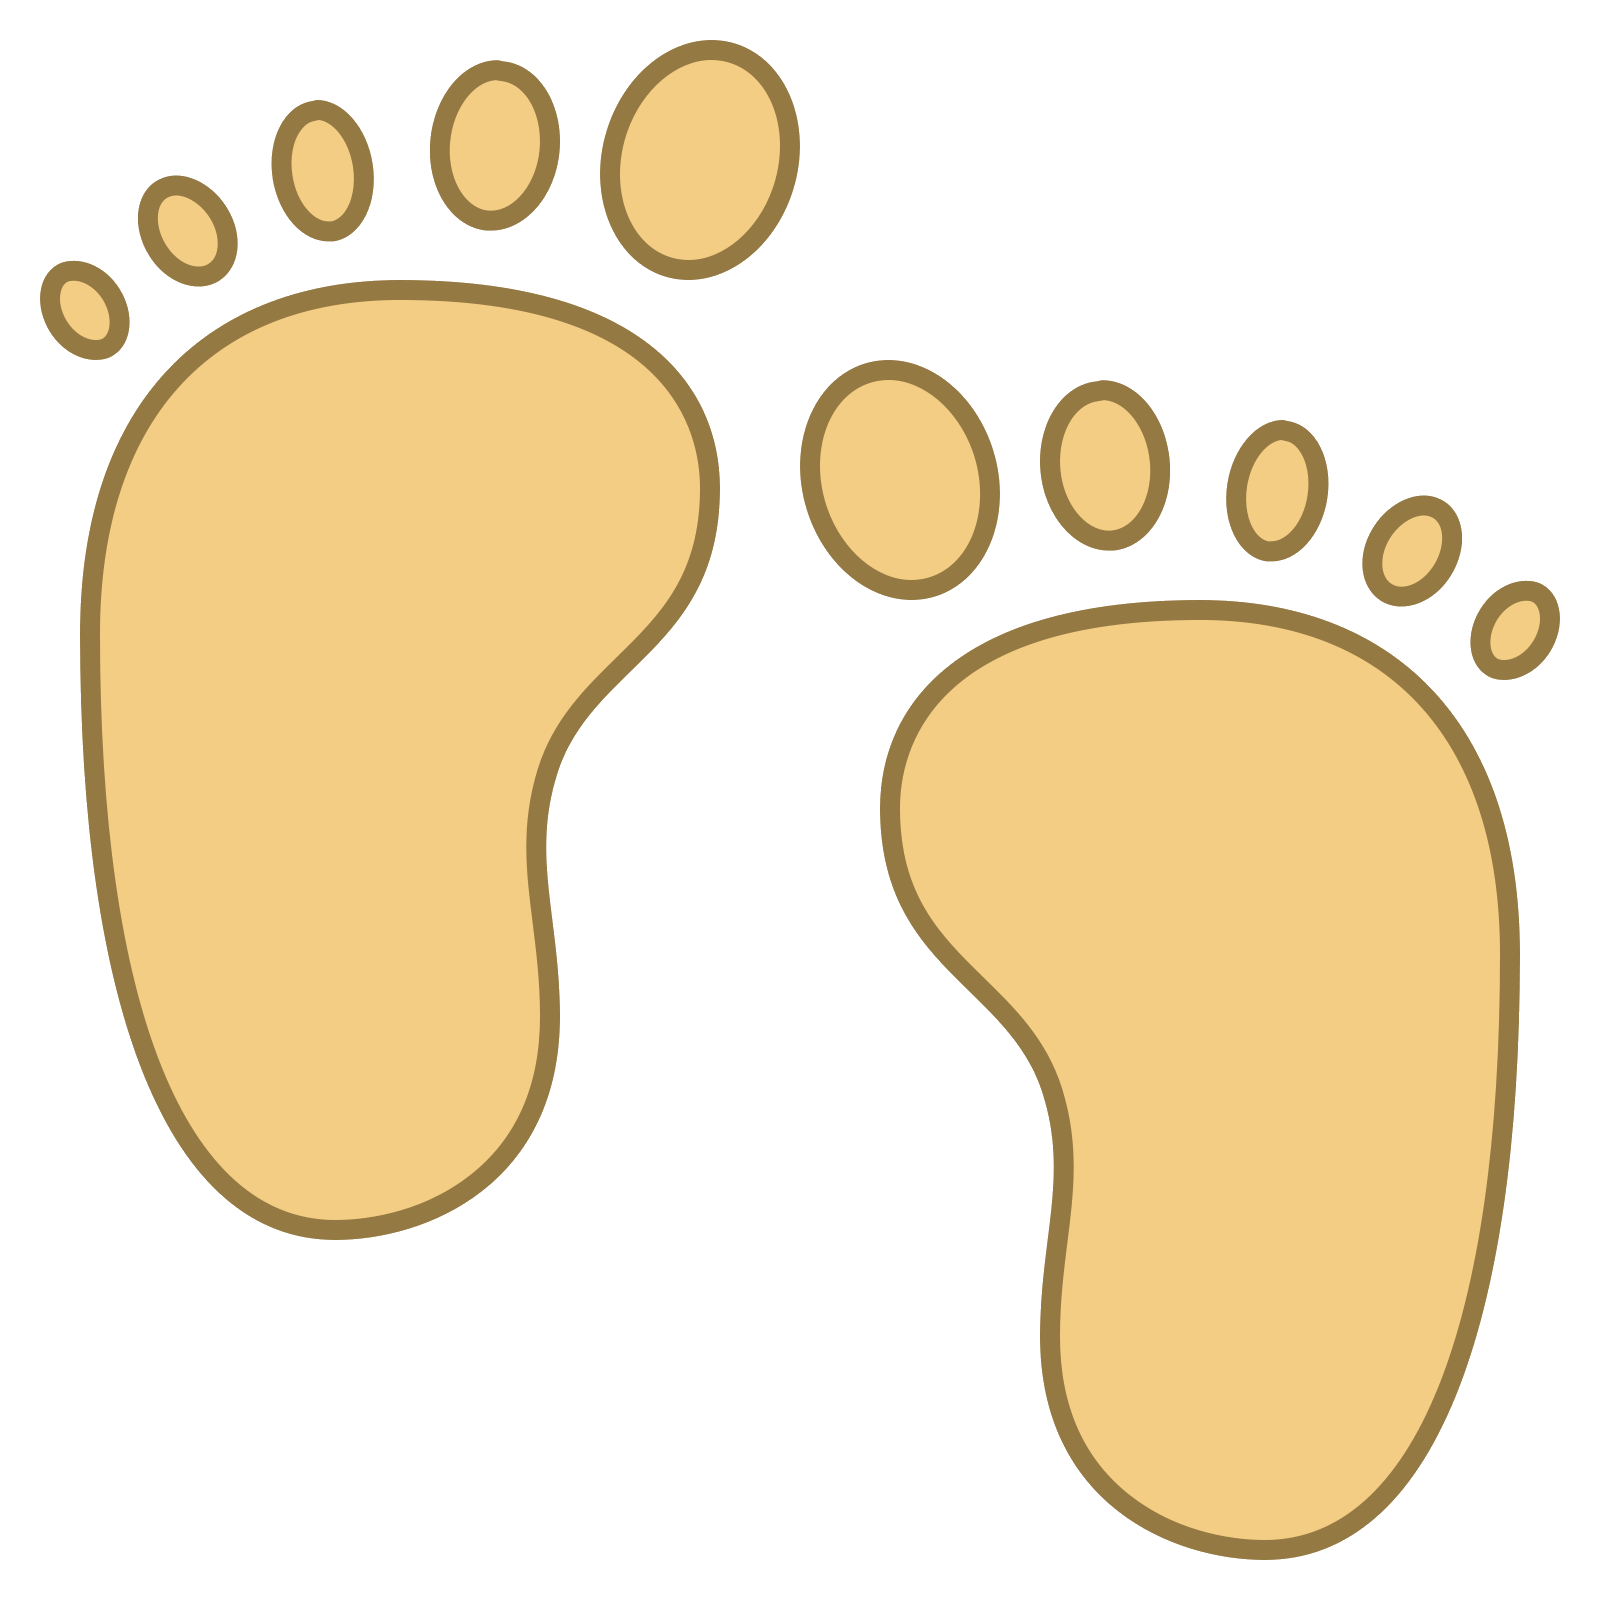 Feet Png & Free Feet.png Transparent Images #3053